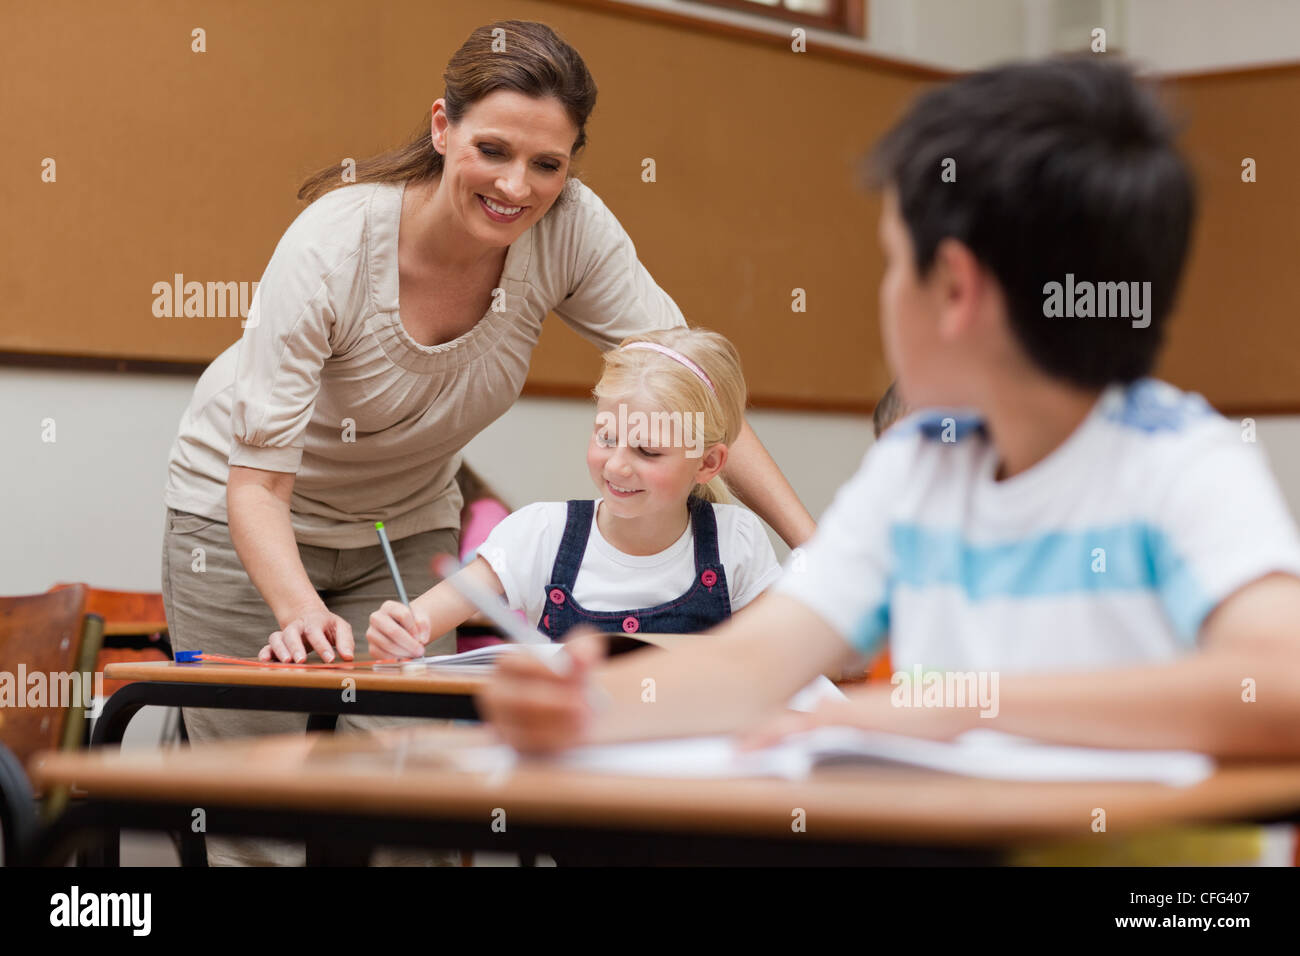 Teacher helping a student - Stock Image